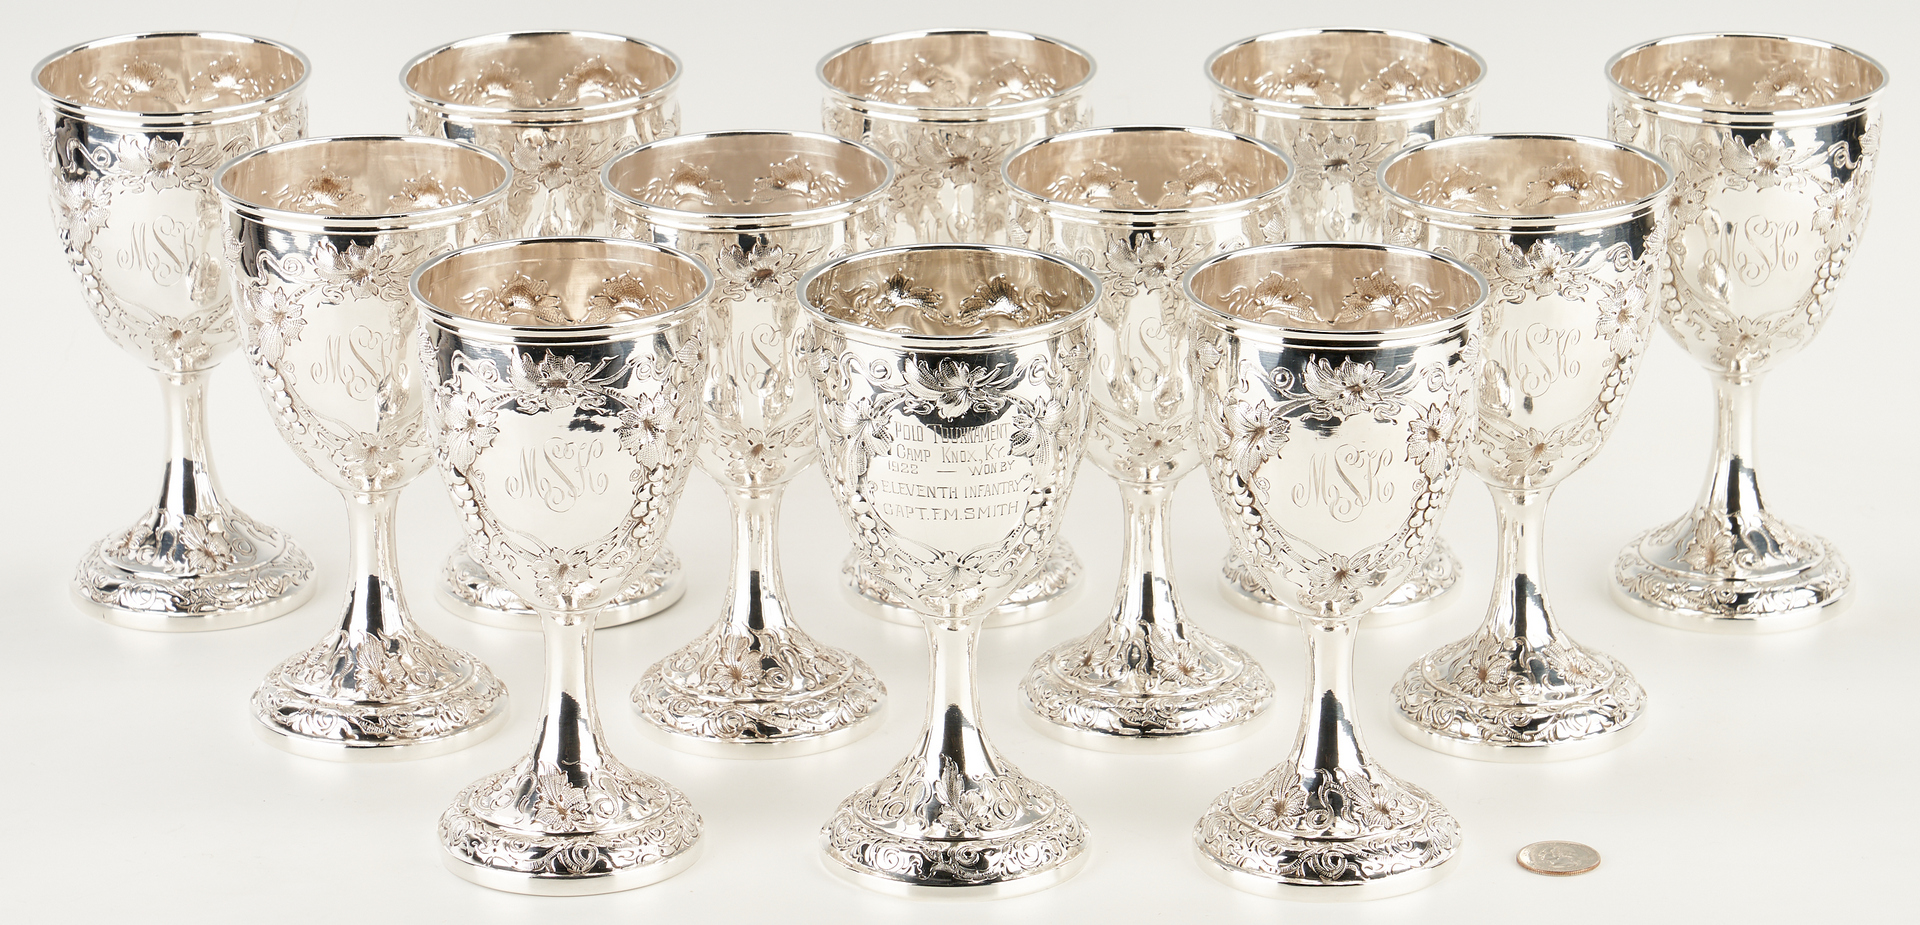 Lot 5: Set of 12 Chinese Export Sterling Silver Goblets, 11 marked Yu Chang